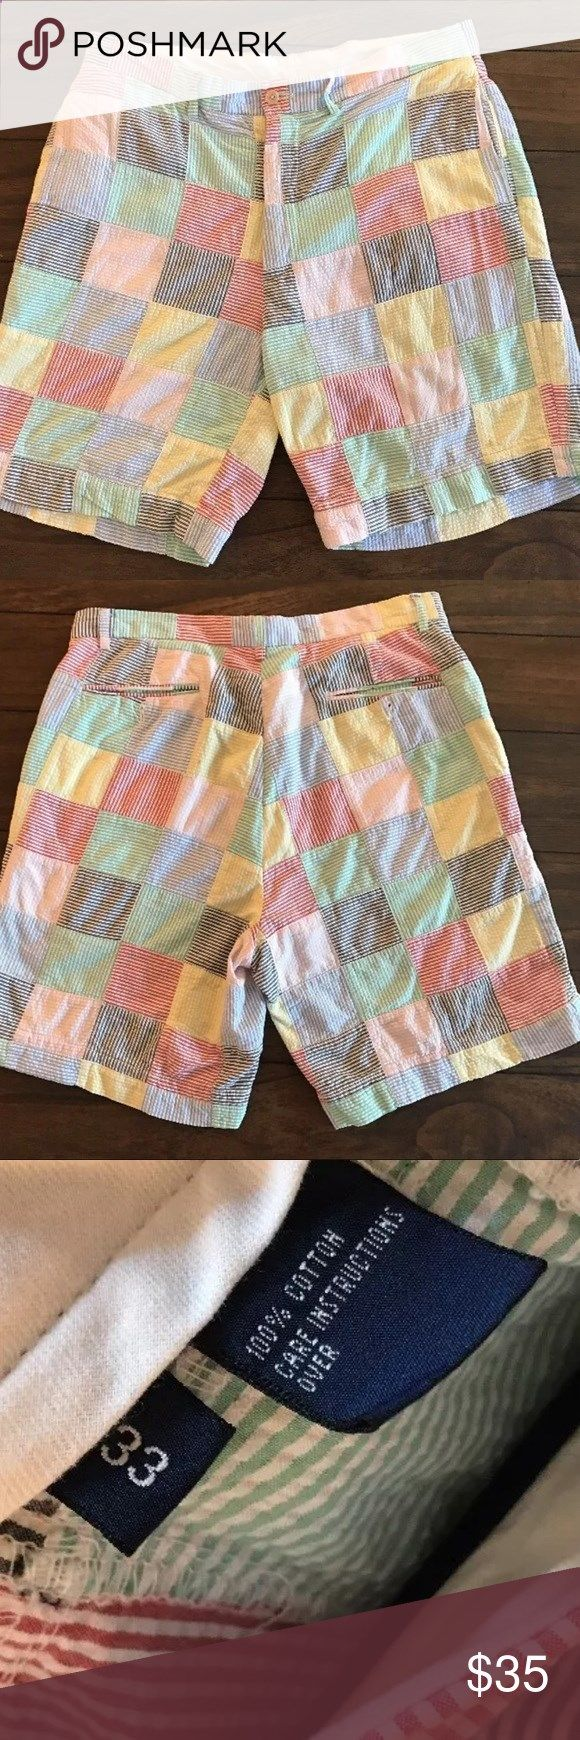 Polo Ralph Lauren Seersucker Plaid Golf Shorts Polo Ralph Lauren Golf plaid seersucker shorts. Waist size 33, inseam: 8.5. Be the preppiest person anywhere! No flaws 💕 Polo by Ralph Lauren Shorts Flat Front